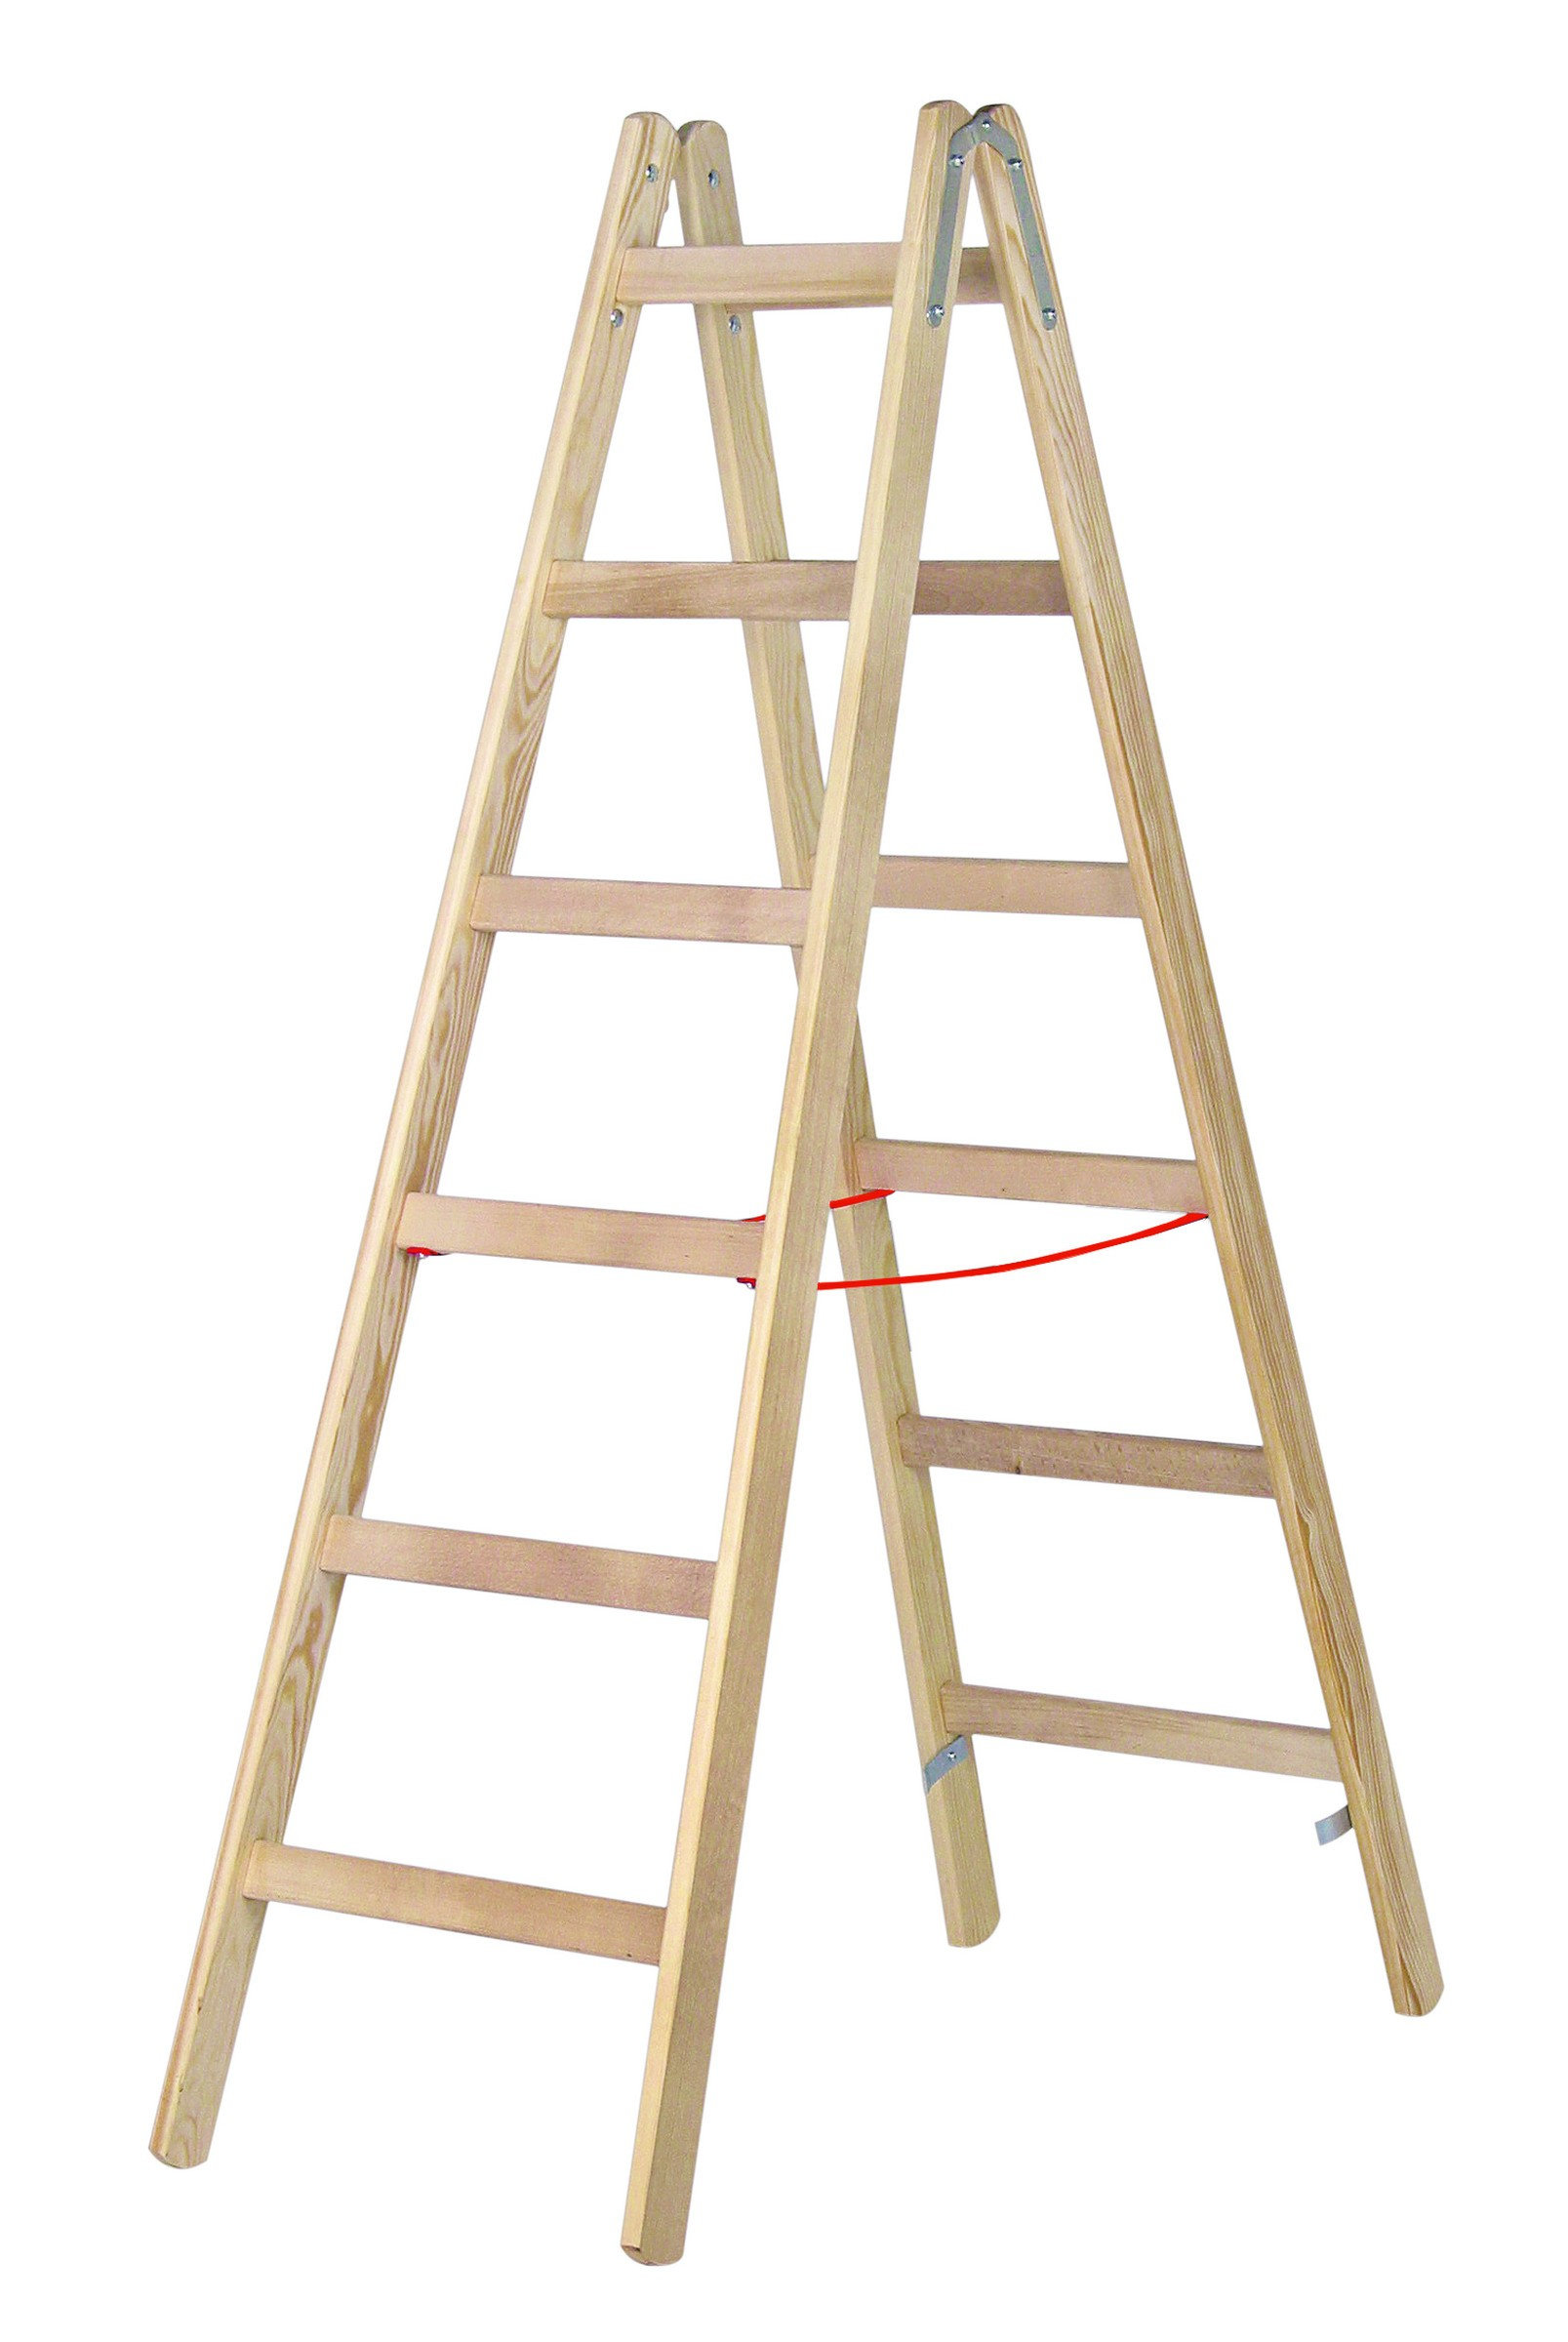 Indupro Ag Wooden Rung Ladder